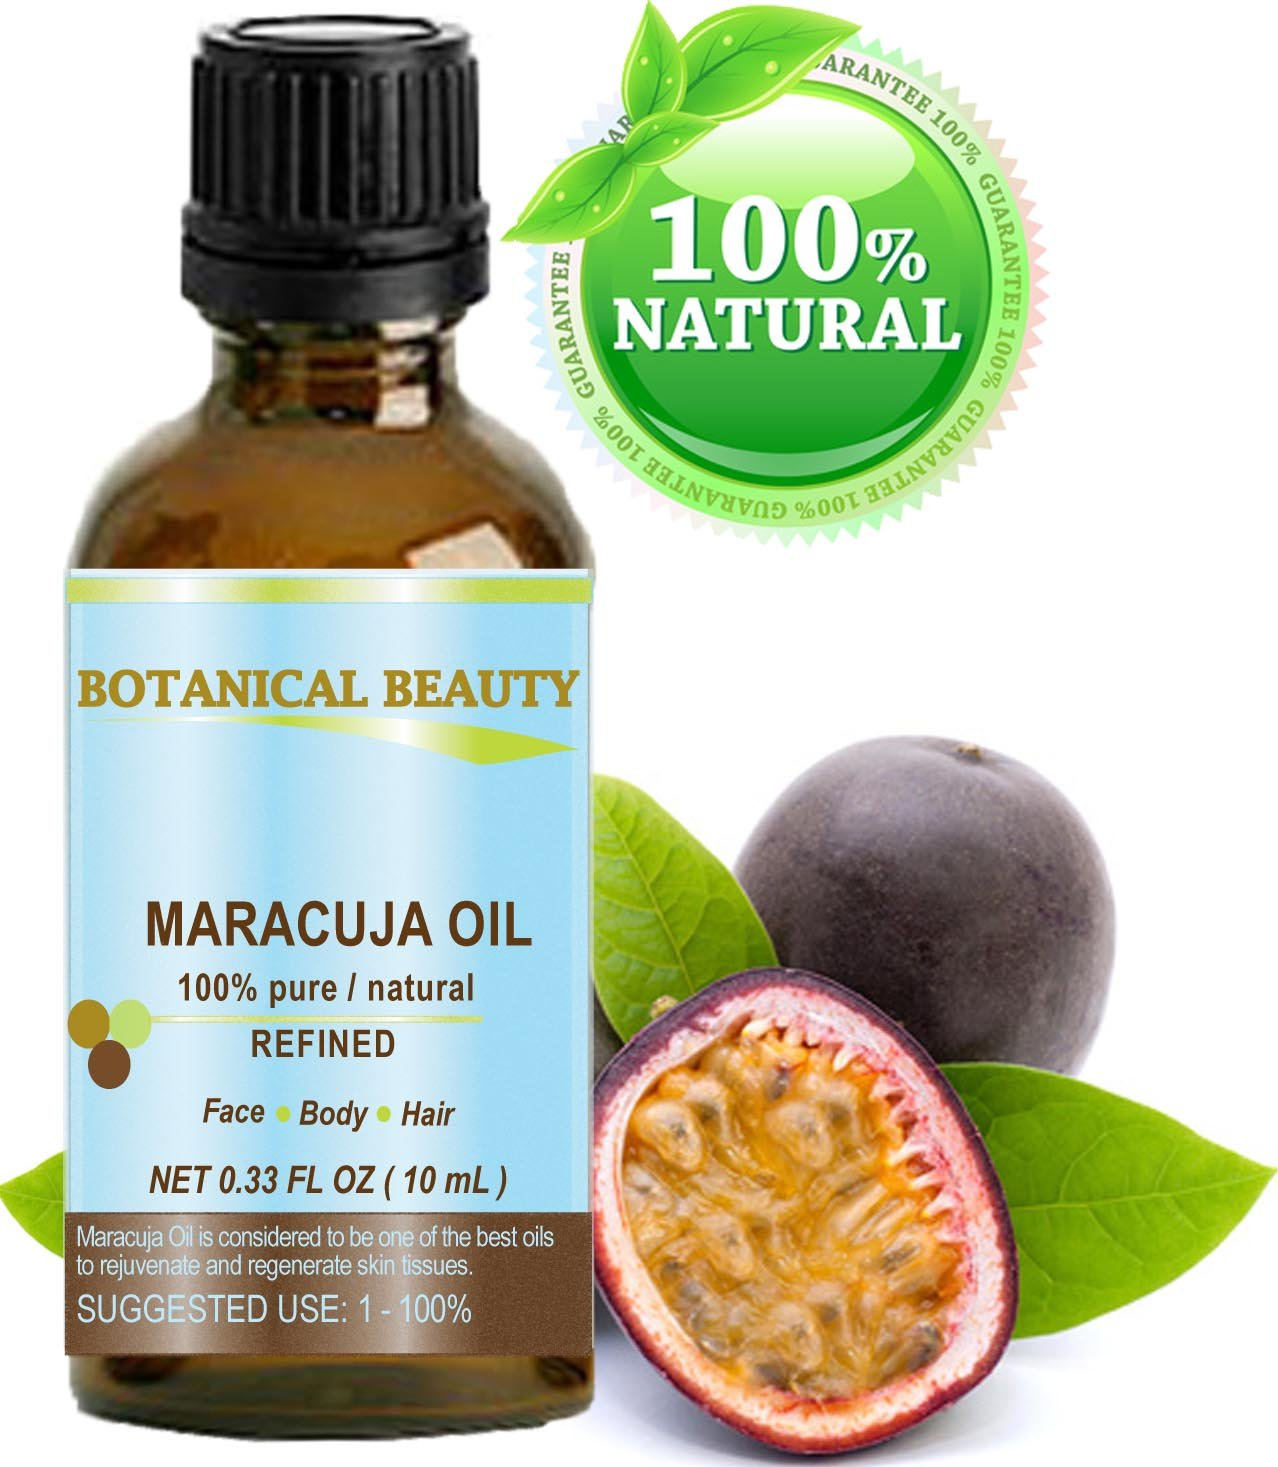 Maracuja Oil. 100% Pure/Natural. Cold Pressed/Undiluted. For Face, Hair and Body. 10ml - 0.33 Fl.oz. By Botanical Beauty